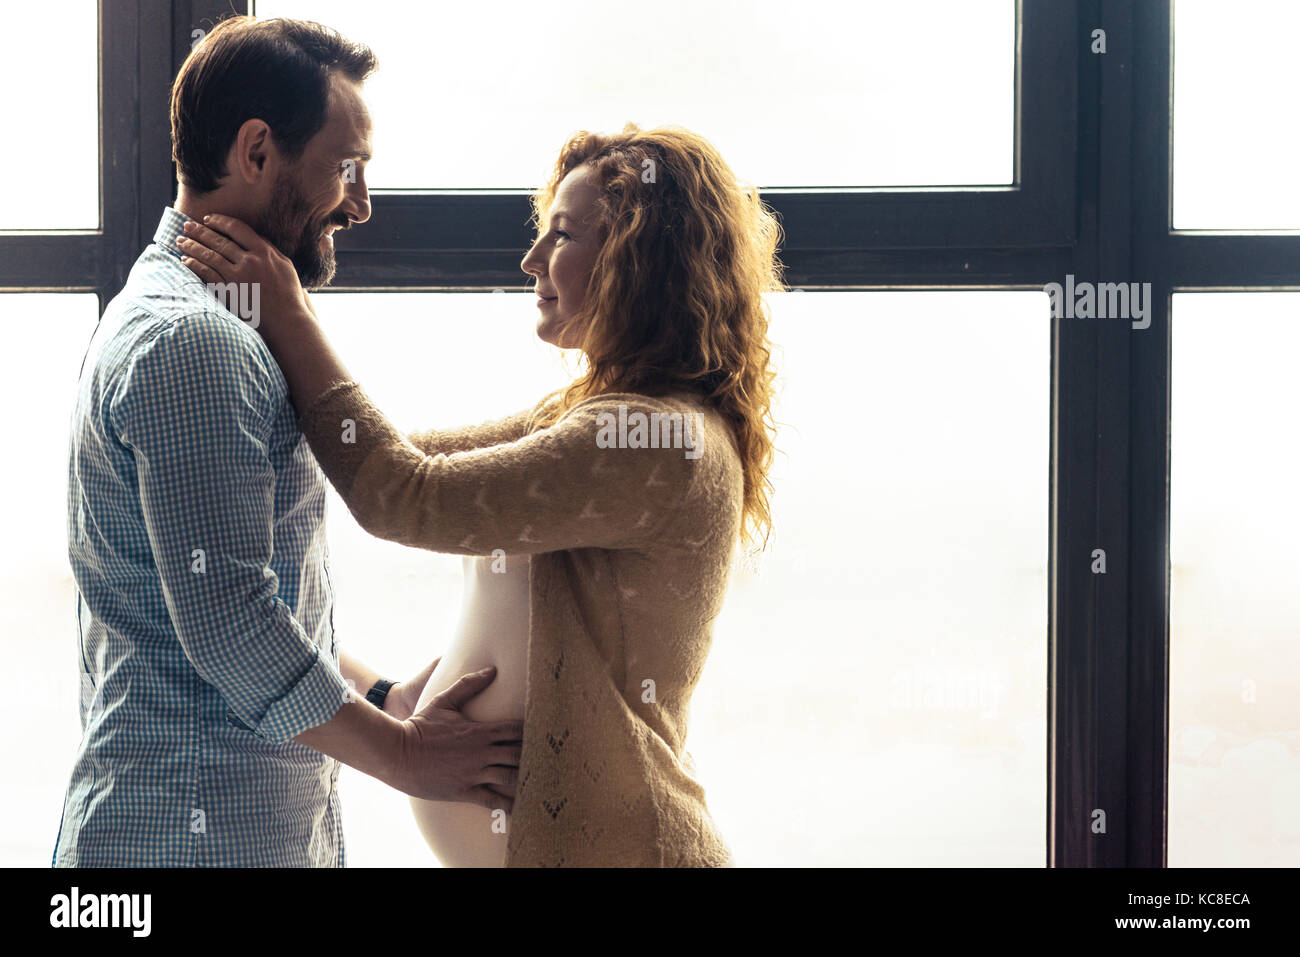 Beloved couple looking at each other - Stock Image